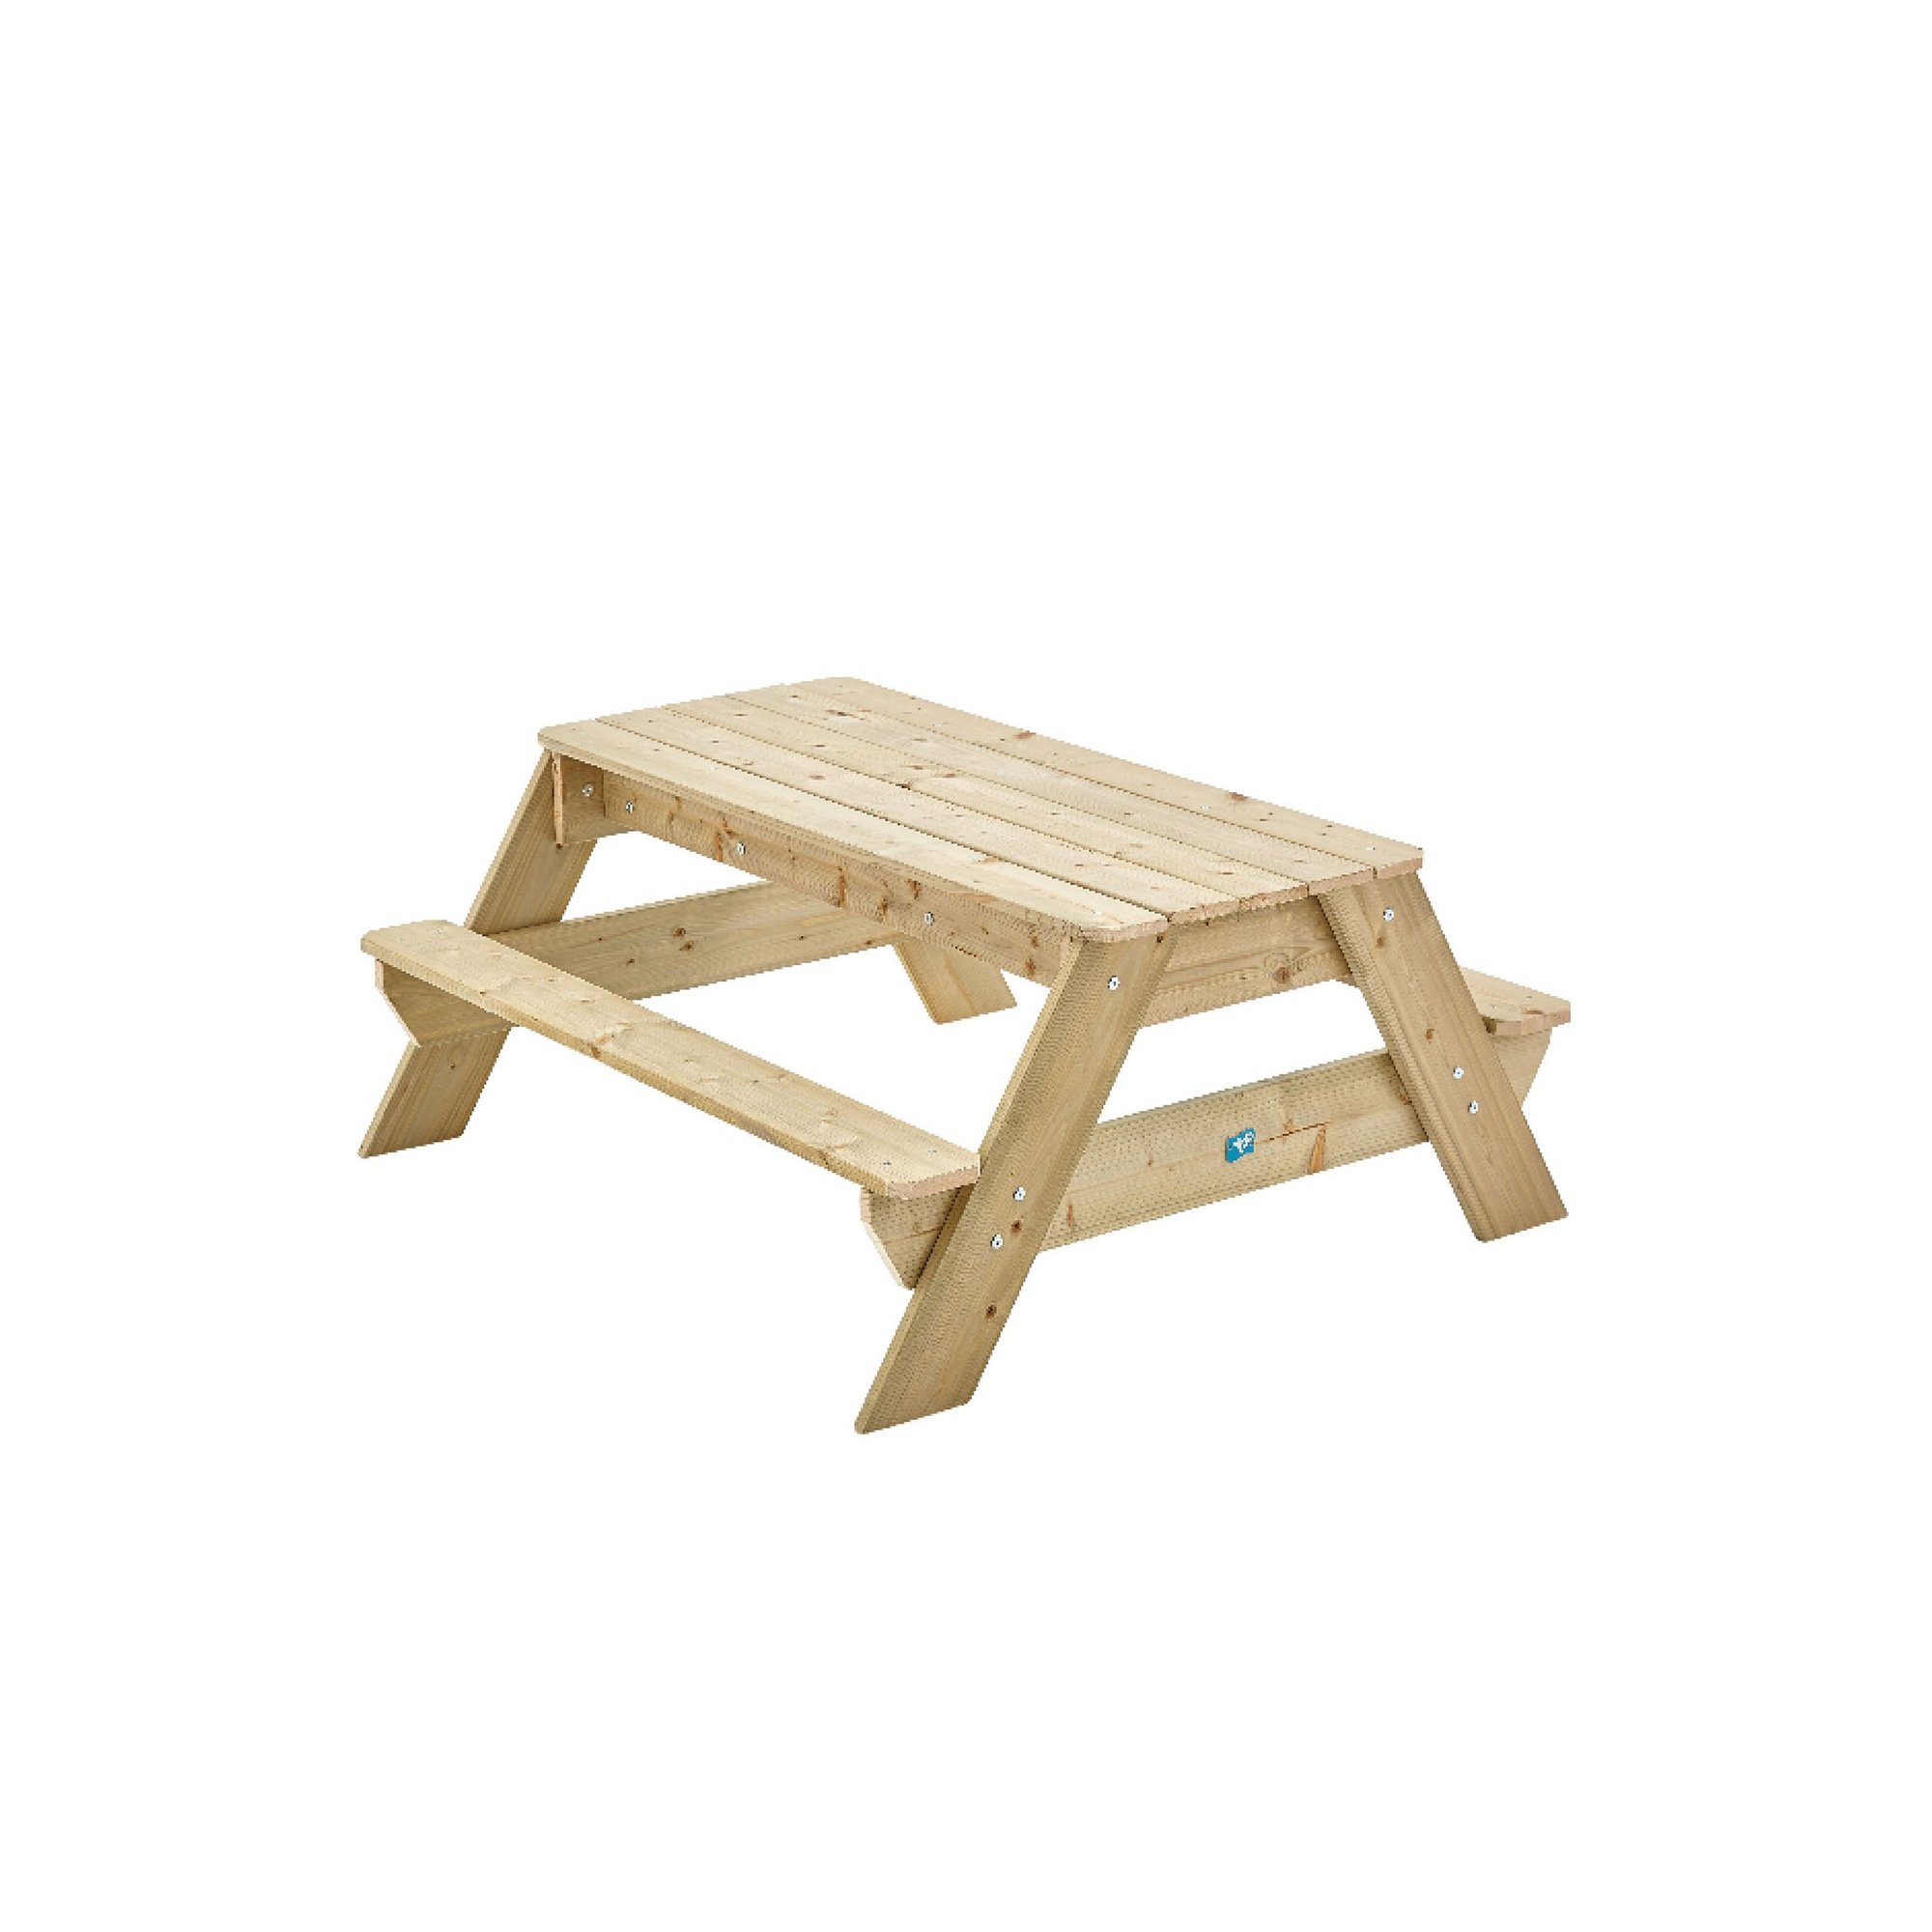 Image of TP Toys Deluxe Picnic Table Sandpit